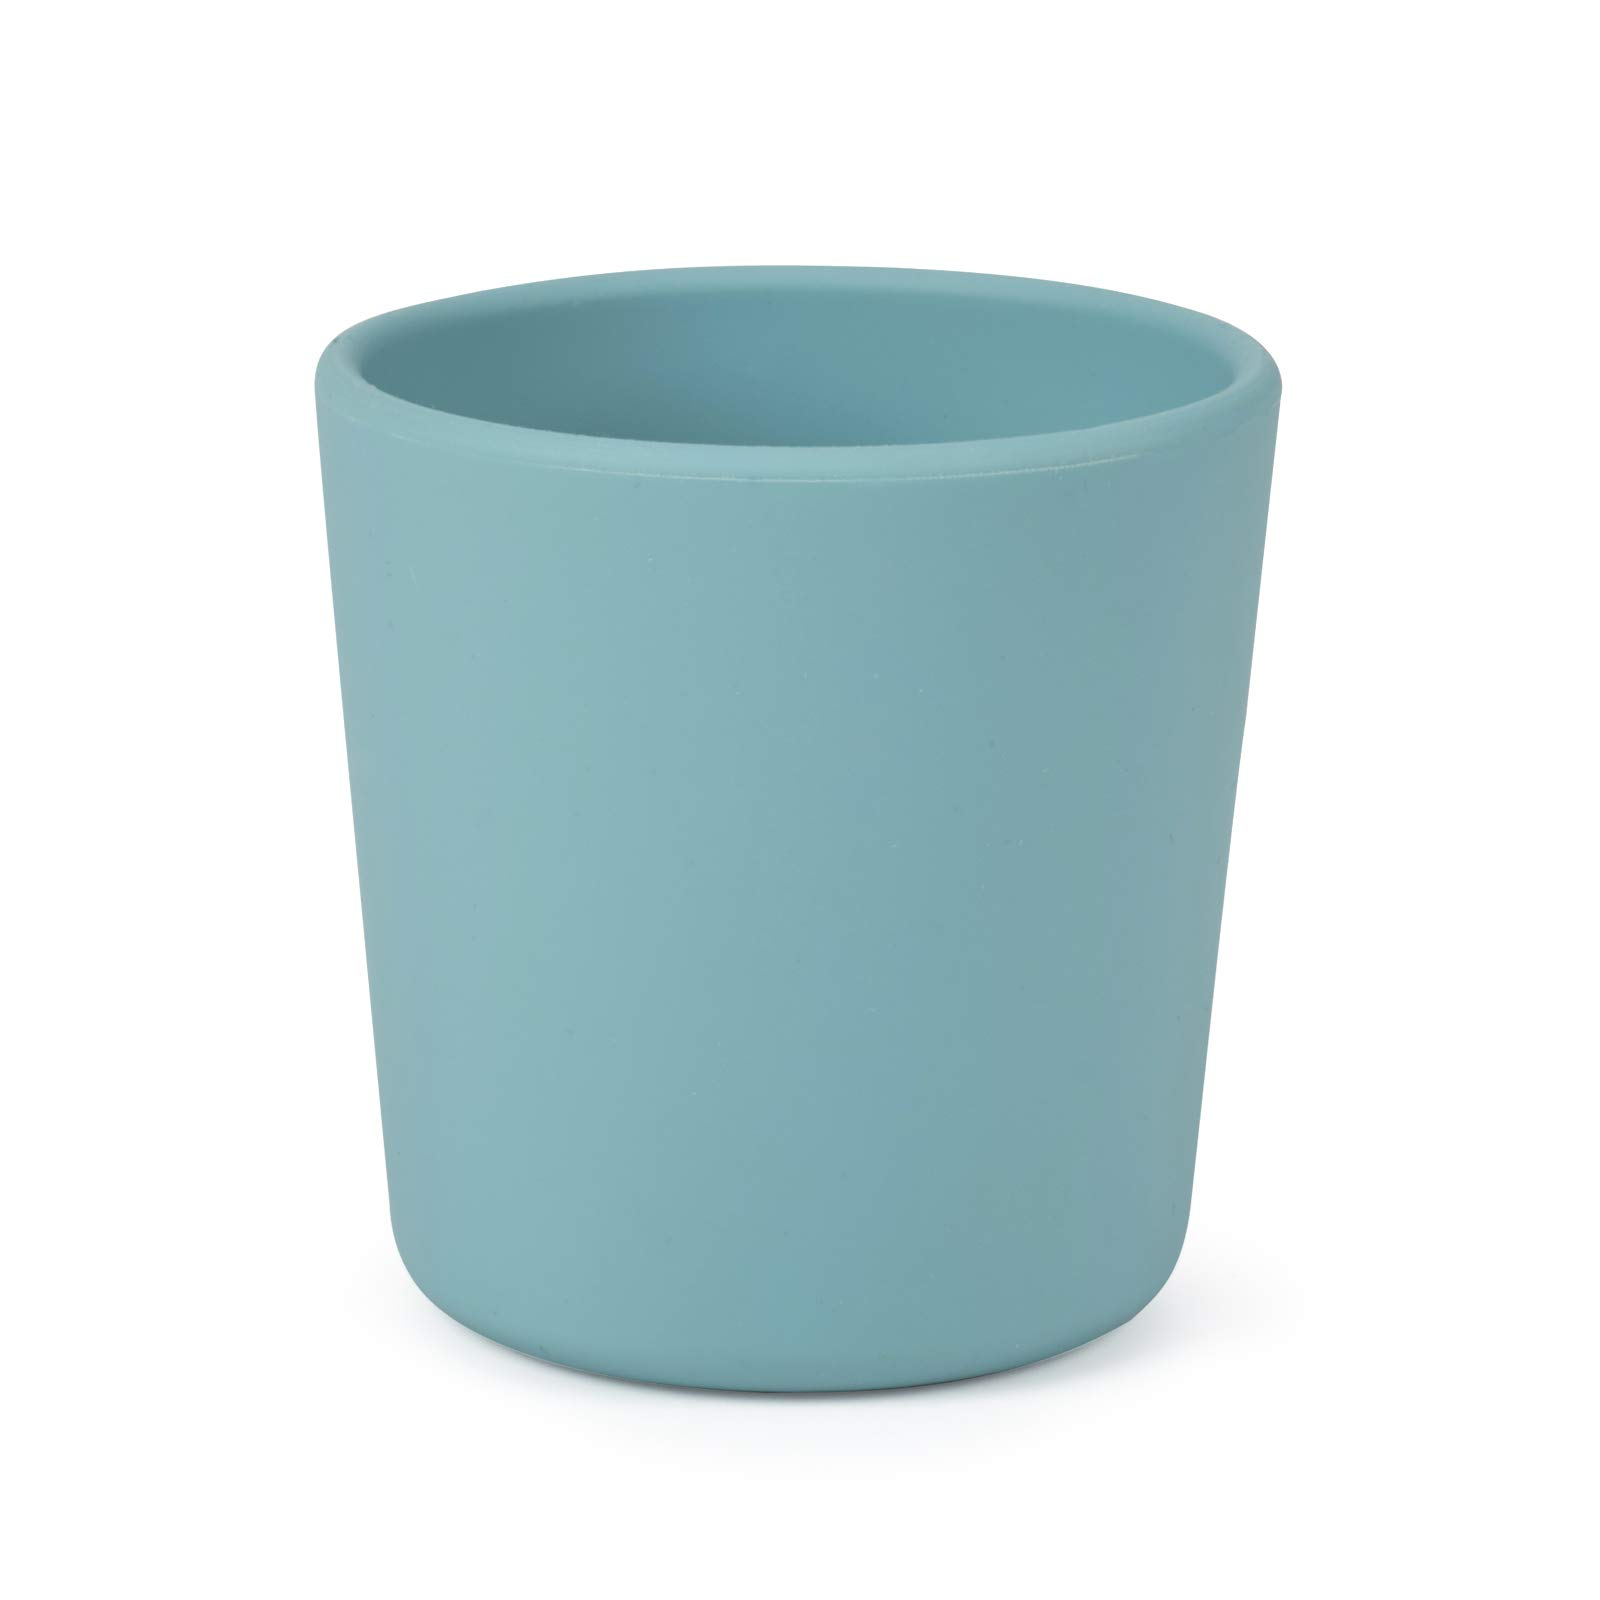 Toddler Cups BPA-Free, Silicone Baby Cup Unbreakable, Training Cup for Babies and Toddlers, Non-Smell, Anti-Slip, Dishwasher Safe (green)